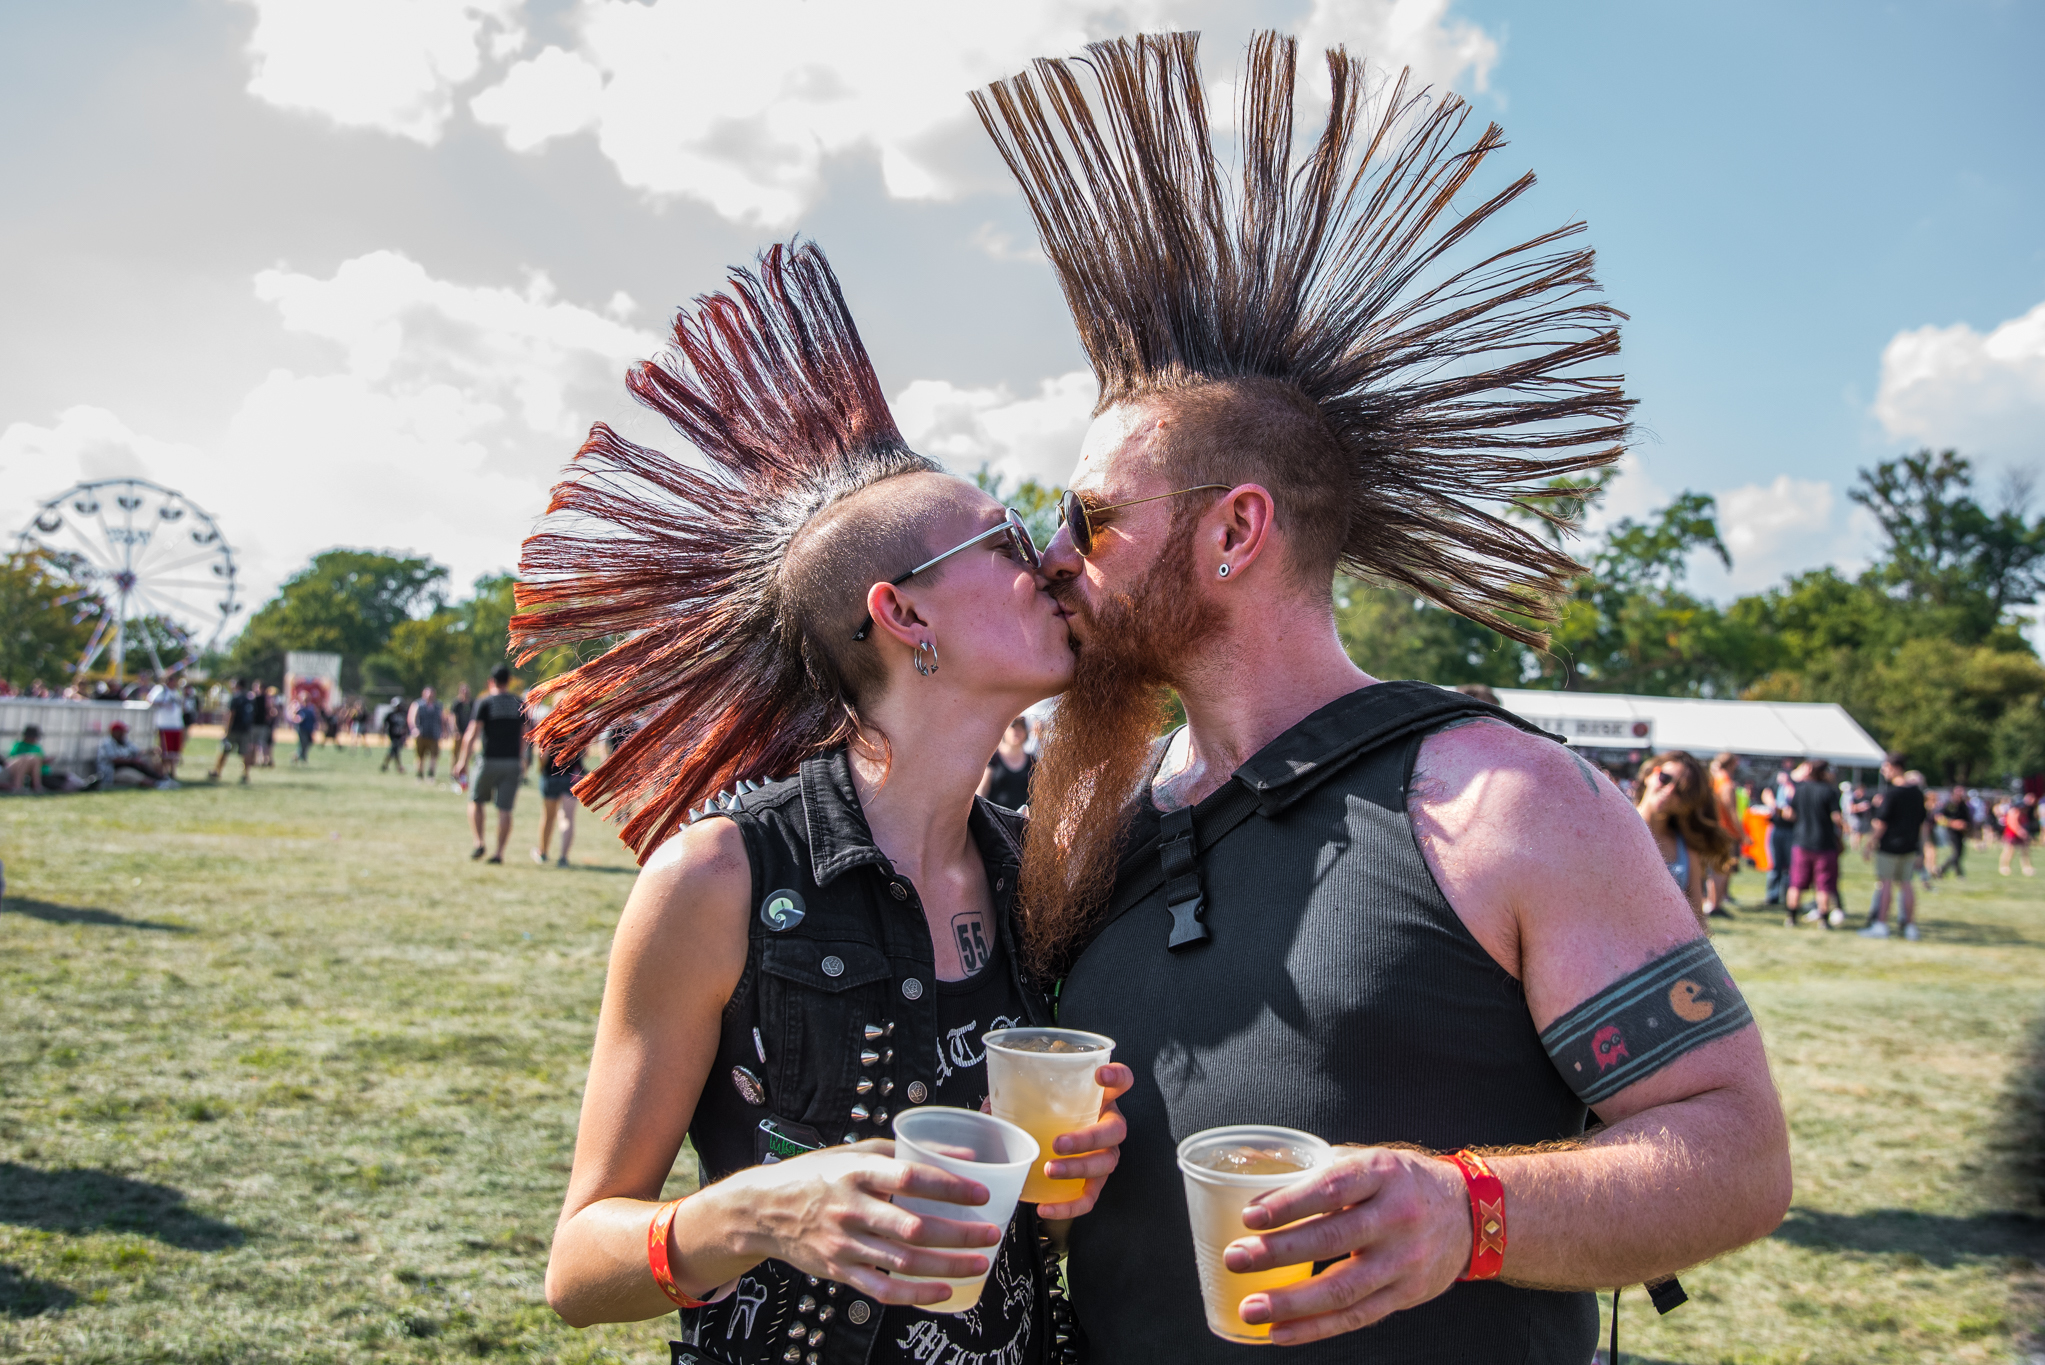 Photos from Riot Fest 2017, Saturday